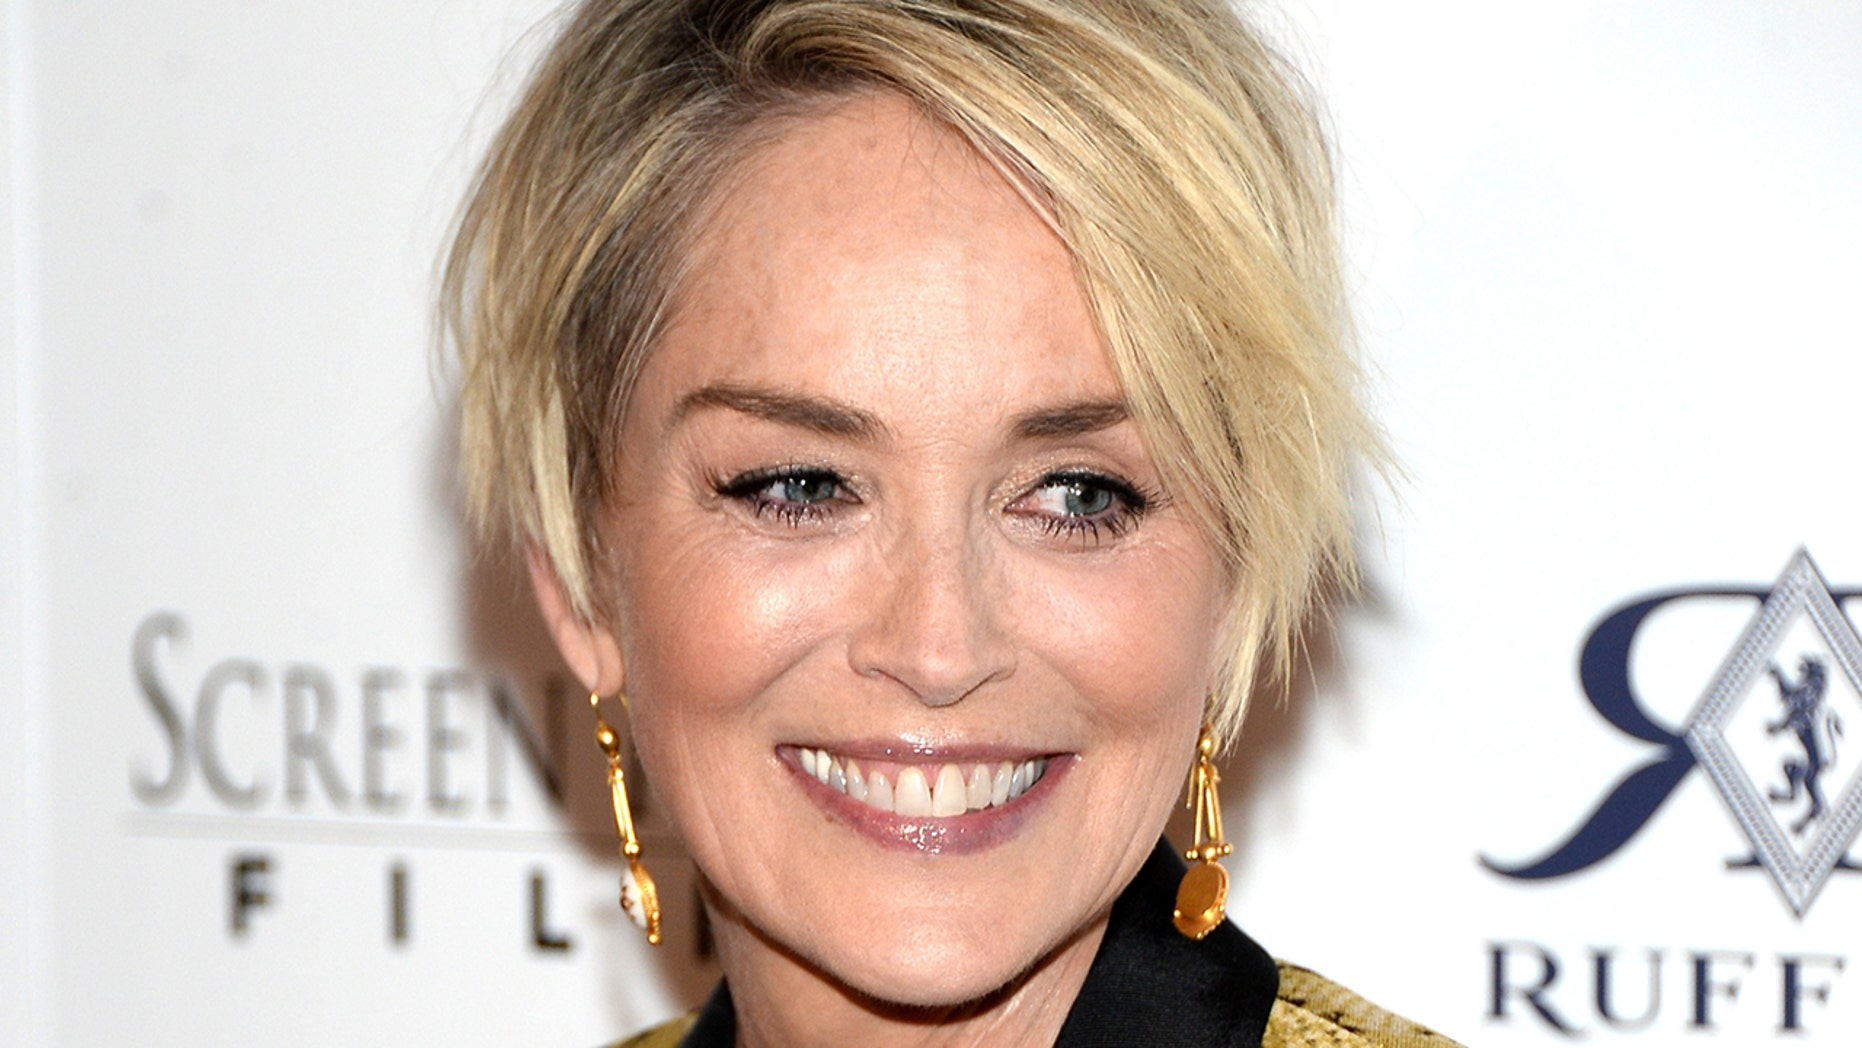 """WEST HOLLYWOOD, CA - APRIL 28:  Actress Sharon Stone attends the Los Angeles Premiere of Screen Media Film's """"Mothers And Daughters"""" at The London on April 28, 2016 in West Hollywood, California.  (Photo by Matt Winkelmeyer/Getty Images)"""